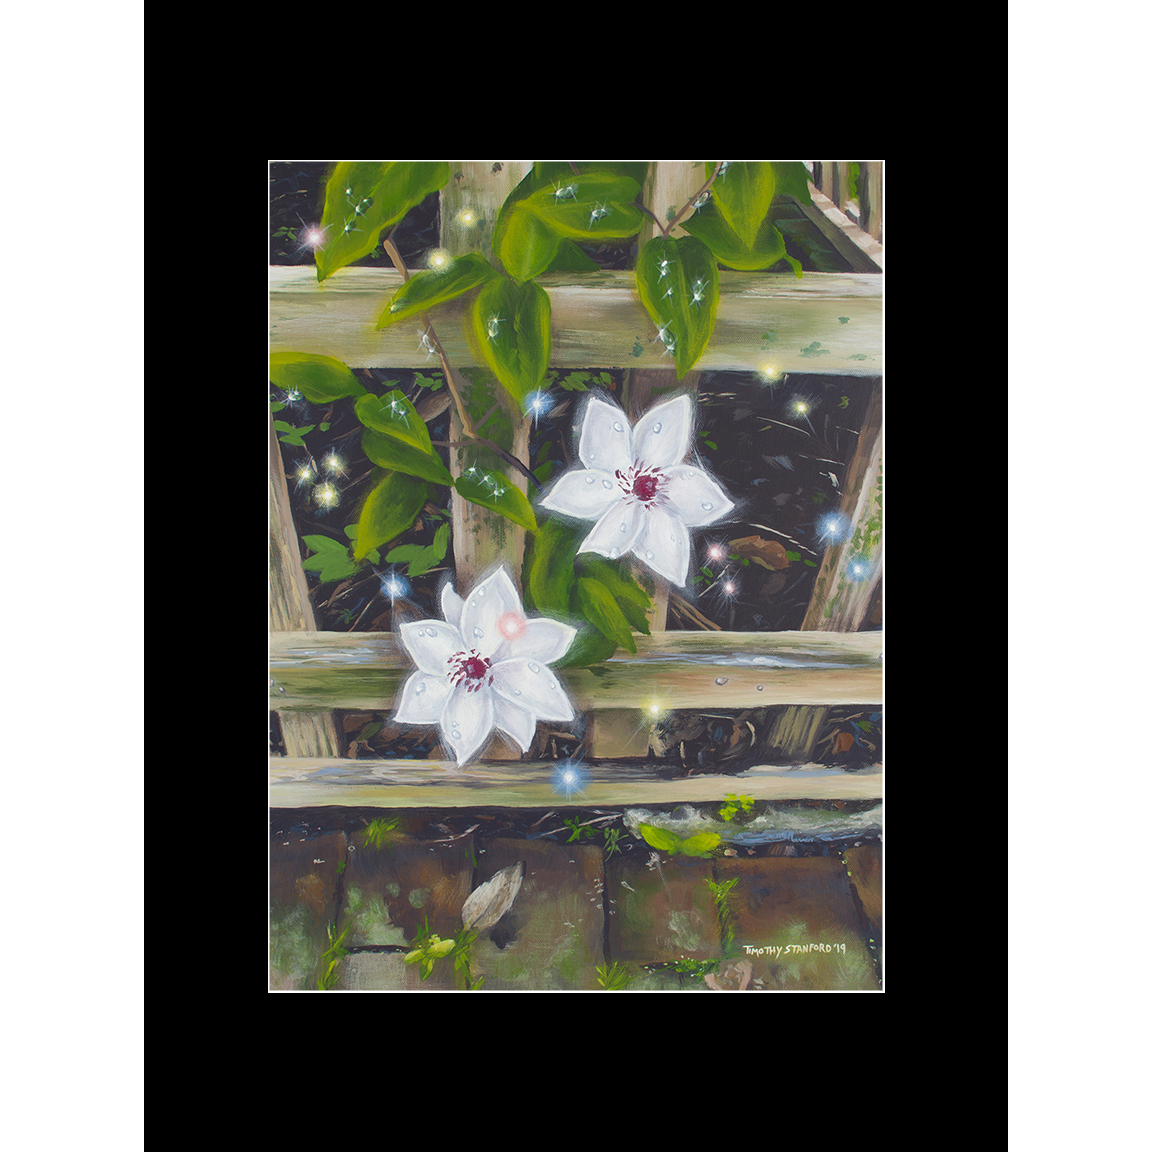 """Fine art matted print of Timothy Stanford's original acrylic painting """"Magic in the Mundane"""""""